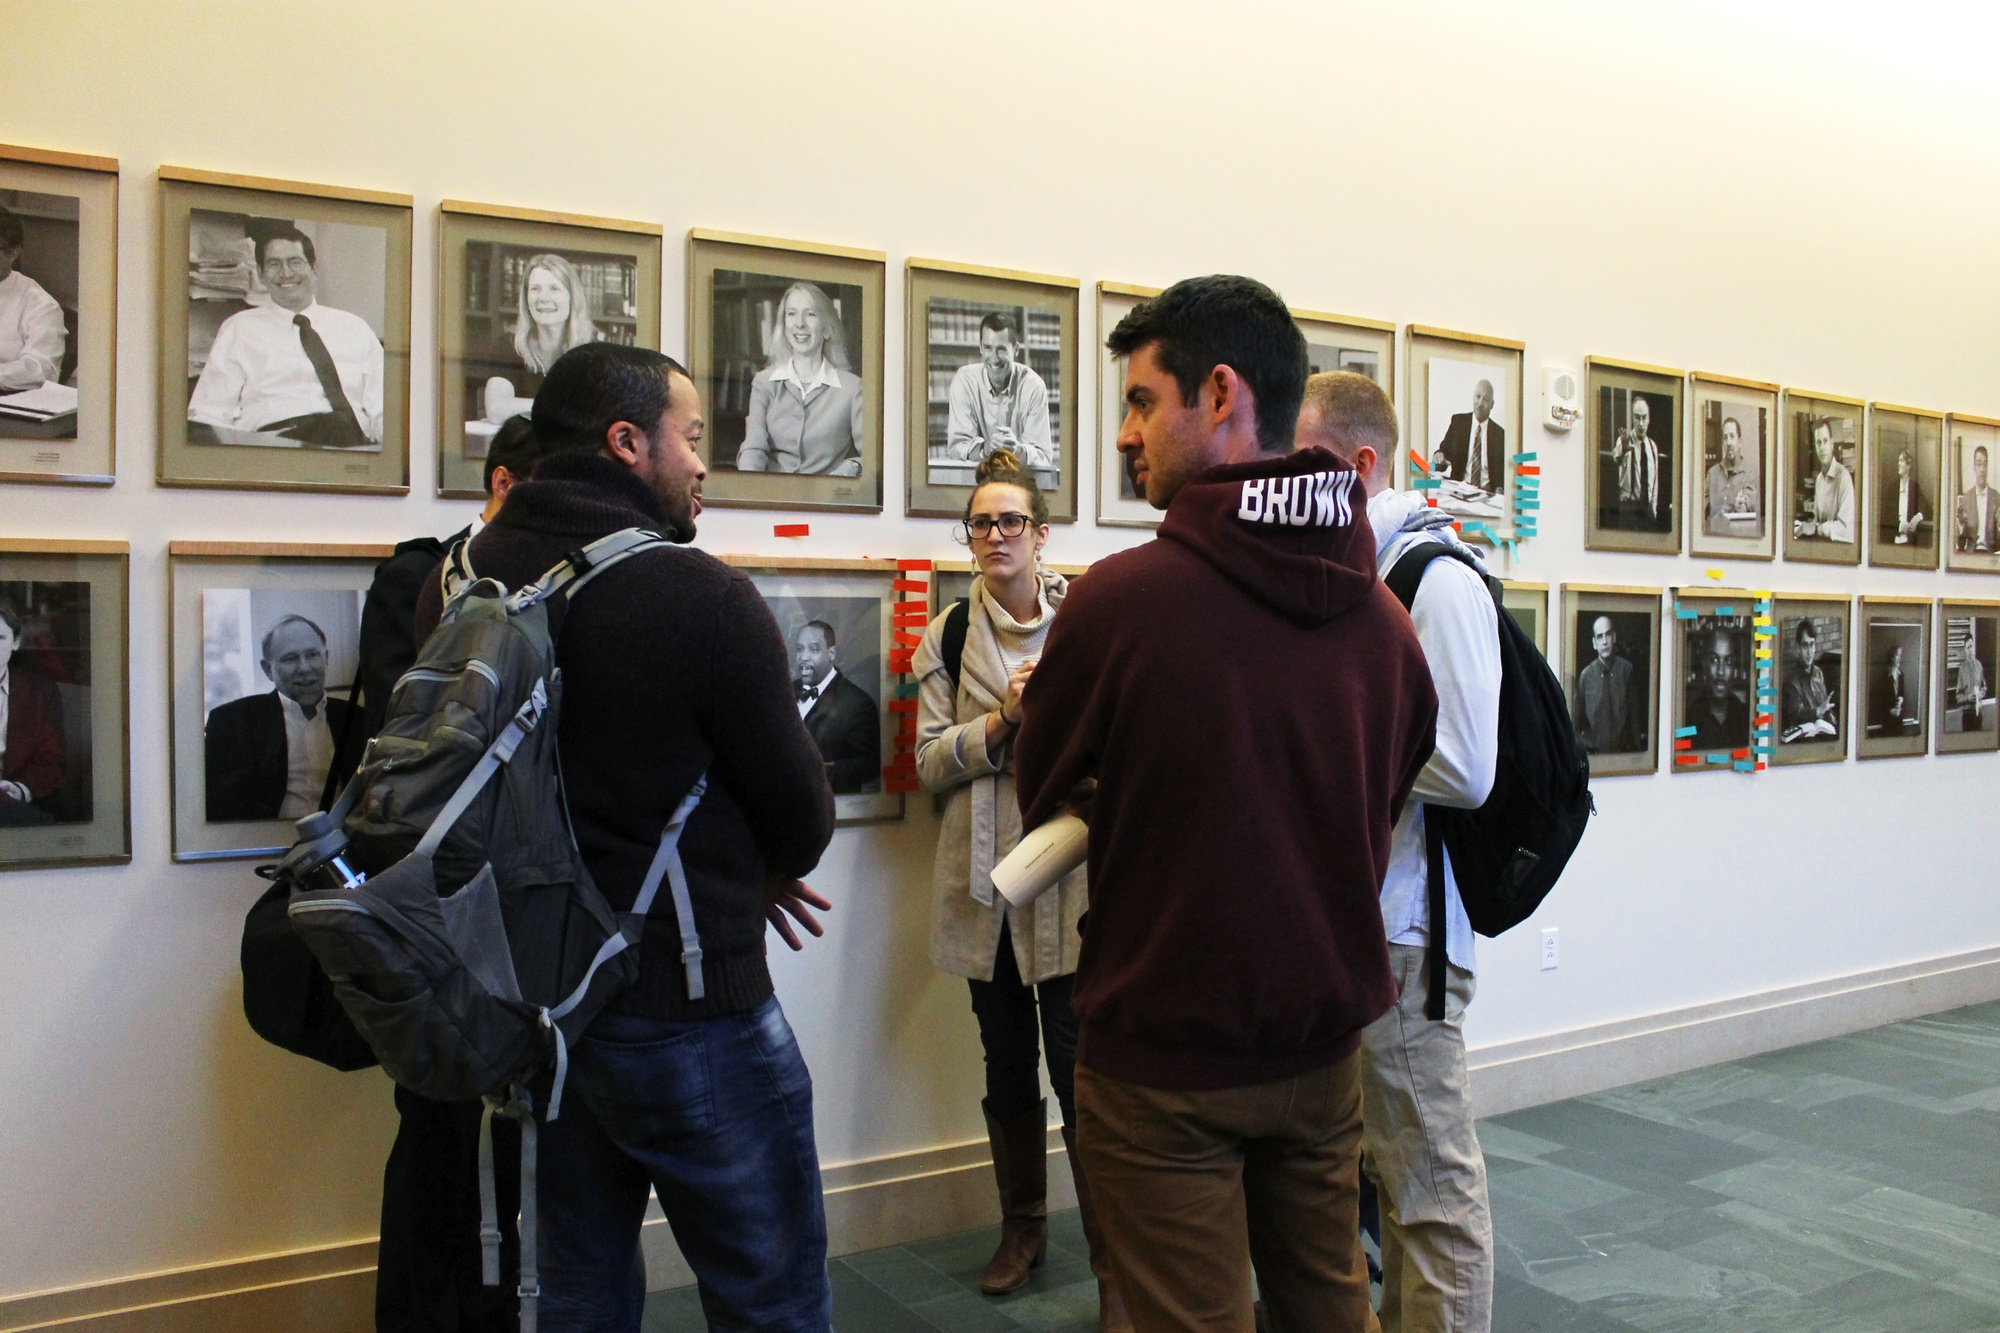 A group of Law School students discusses the vandalism on the portraits of black Law School professors in front of the portraits on the first floor of Wasserstein Hall in the afternoon.